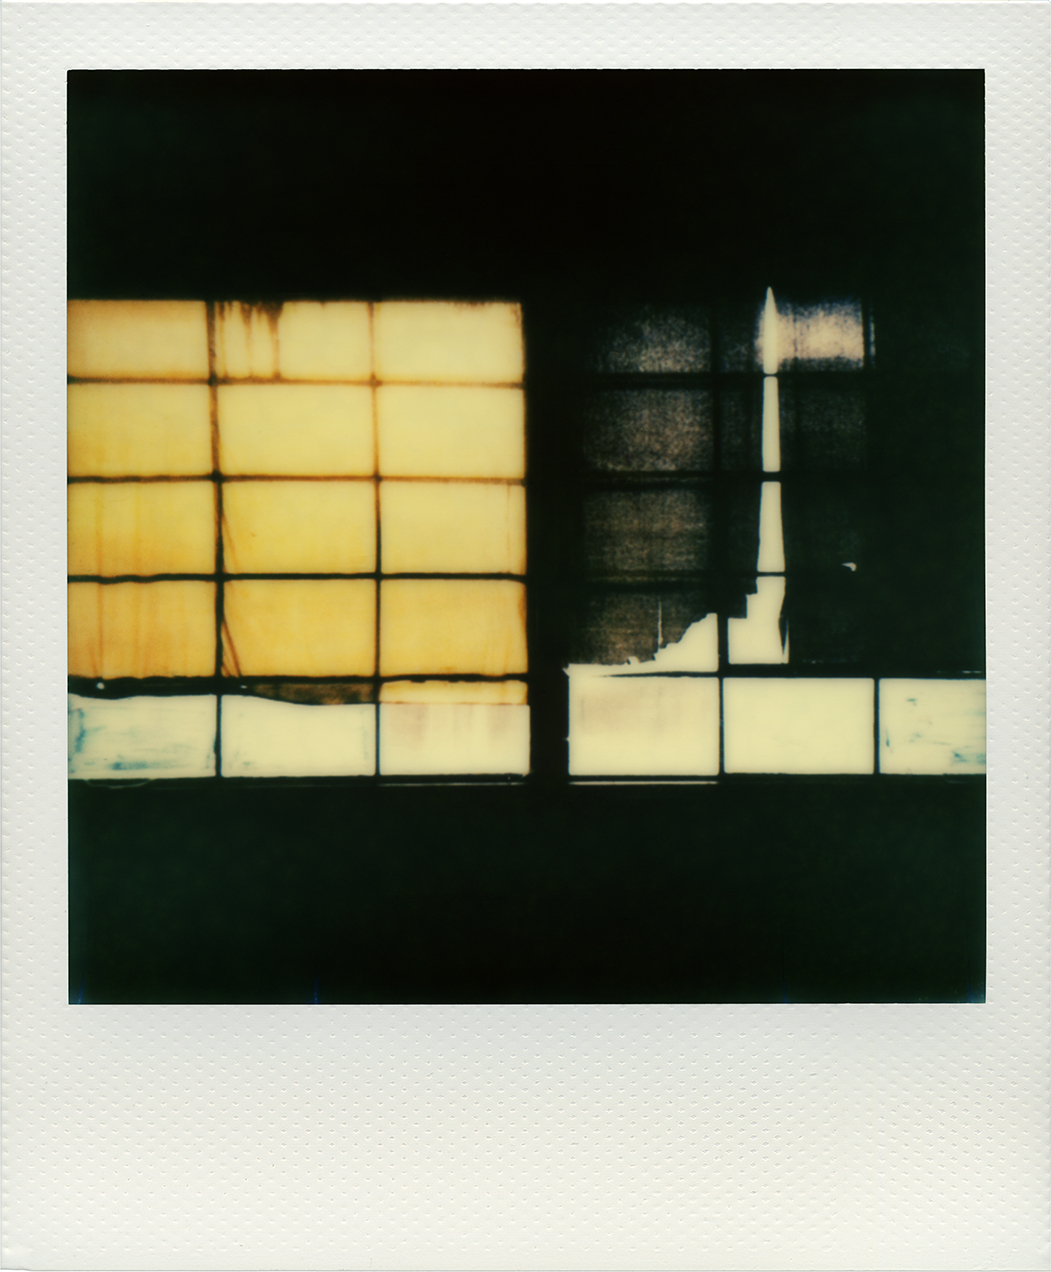 Pola windows 03